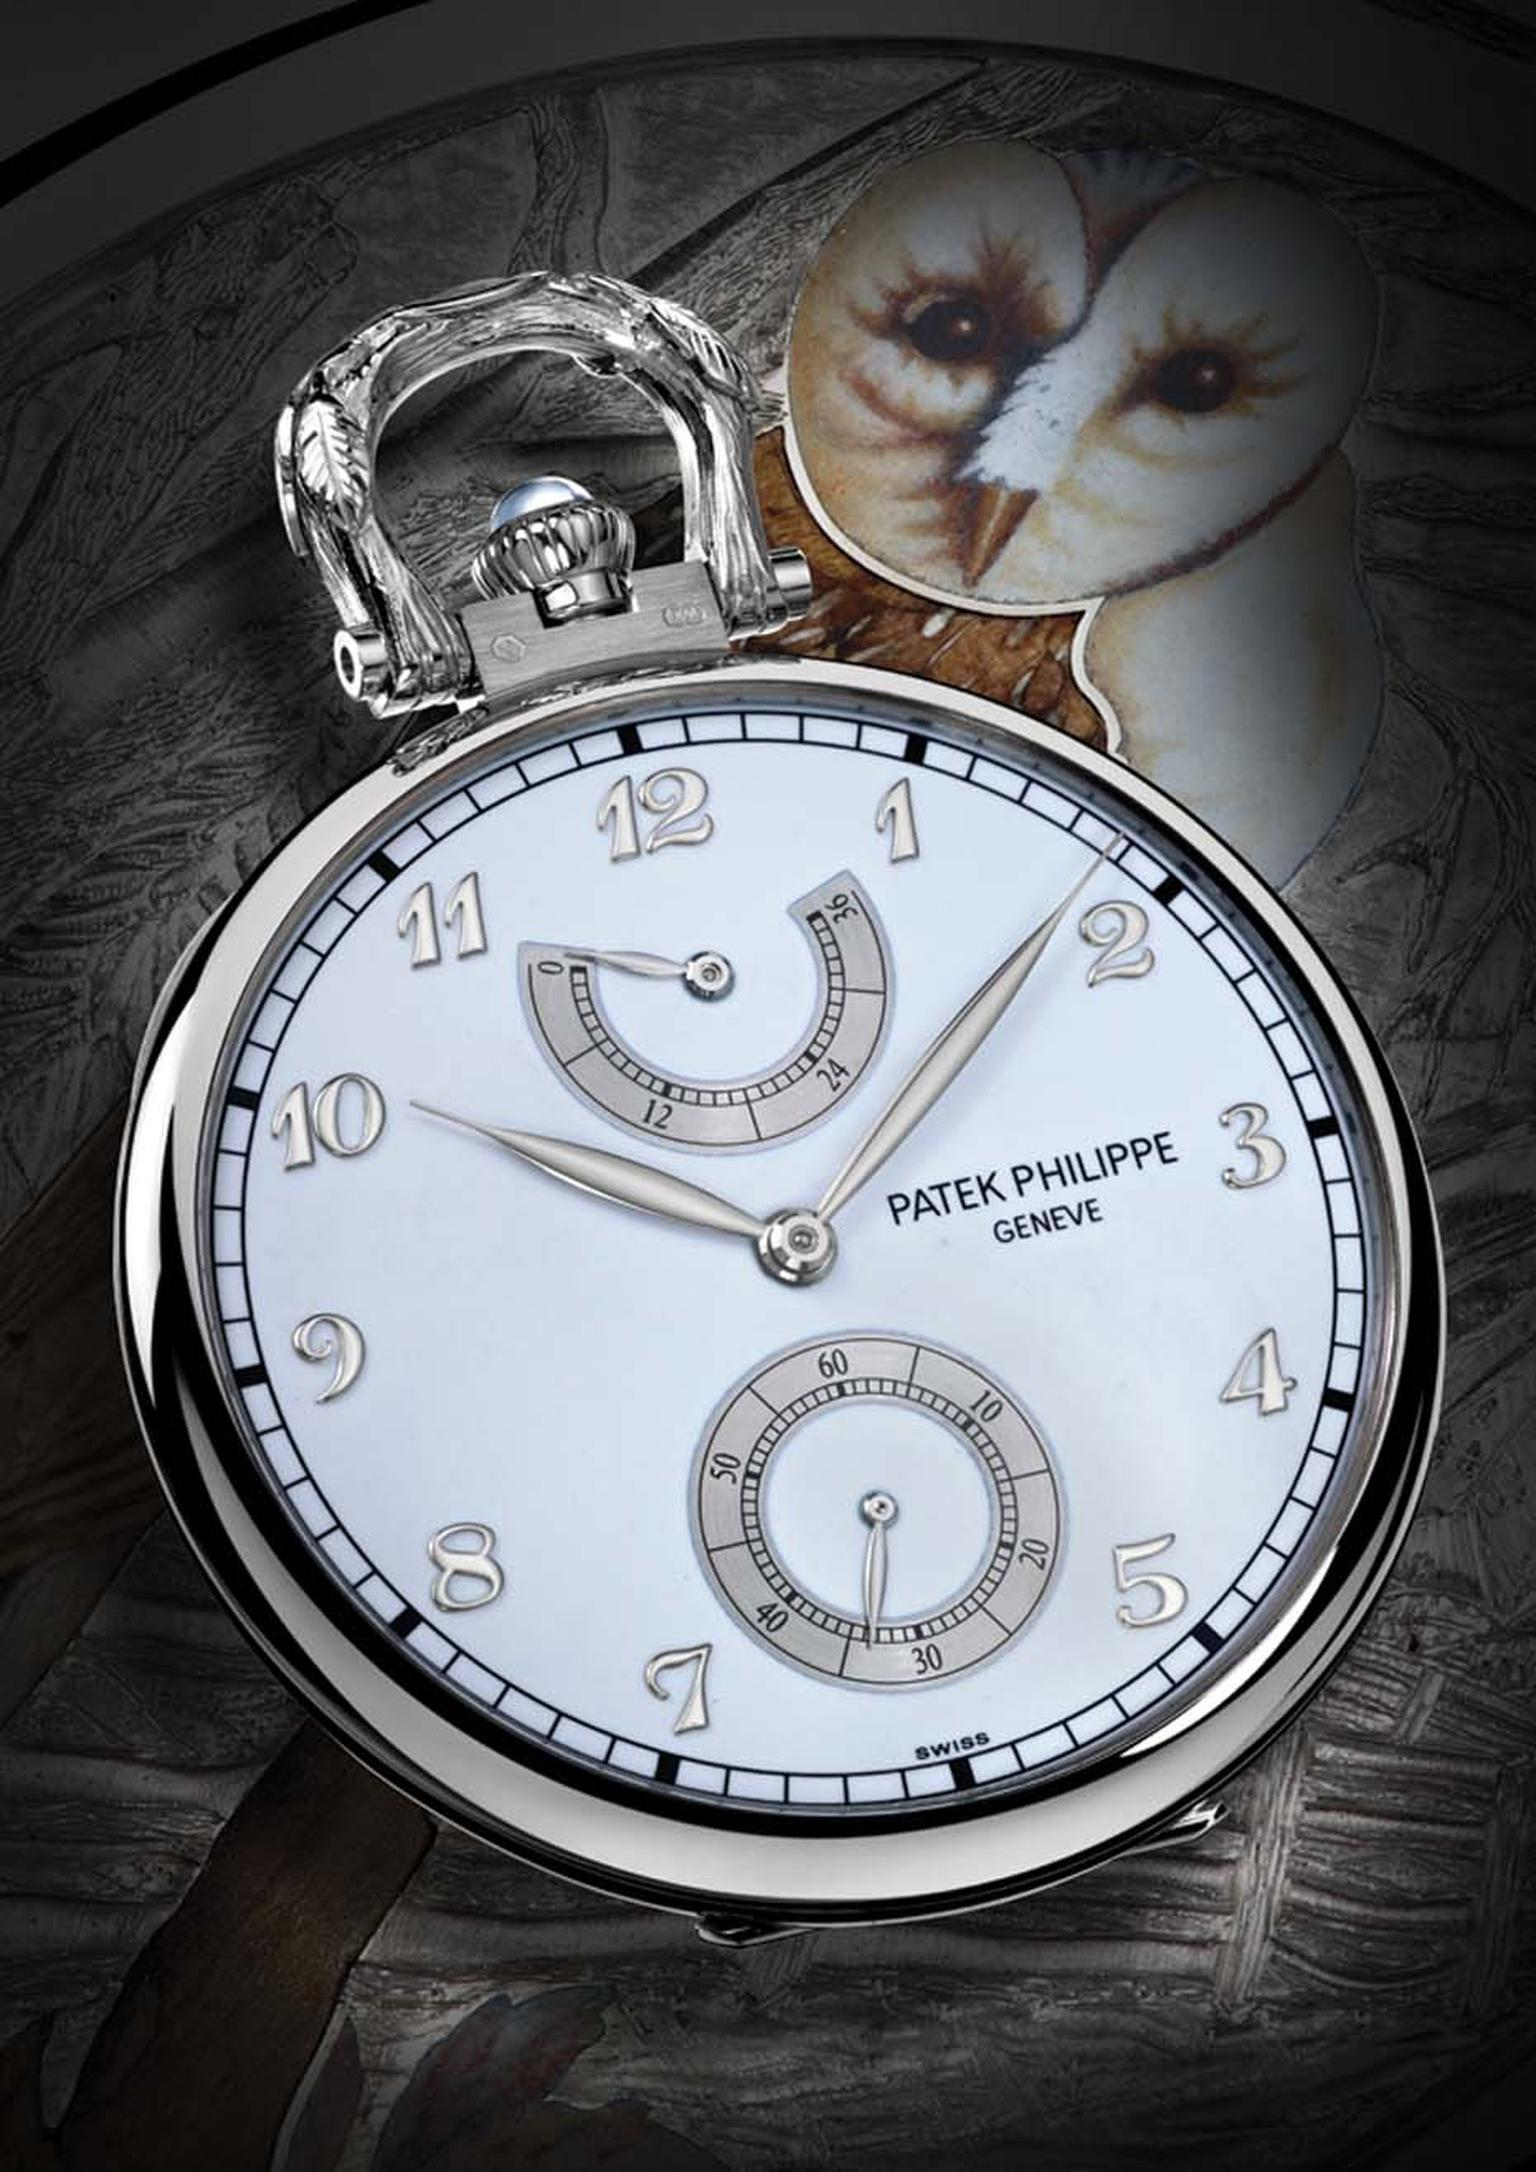 Patekpocketwatches007